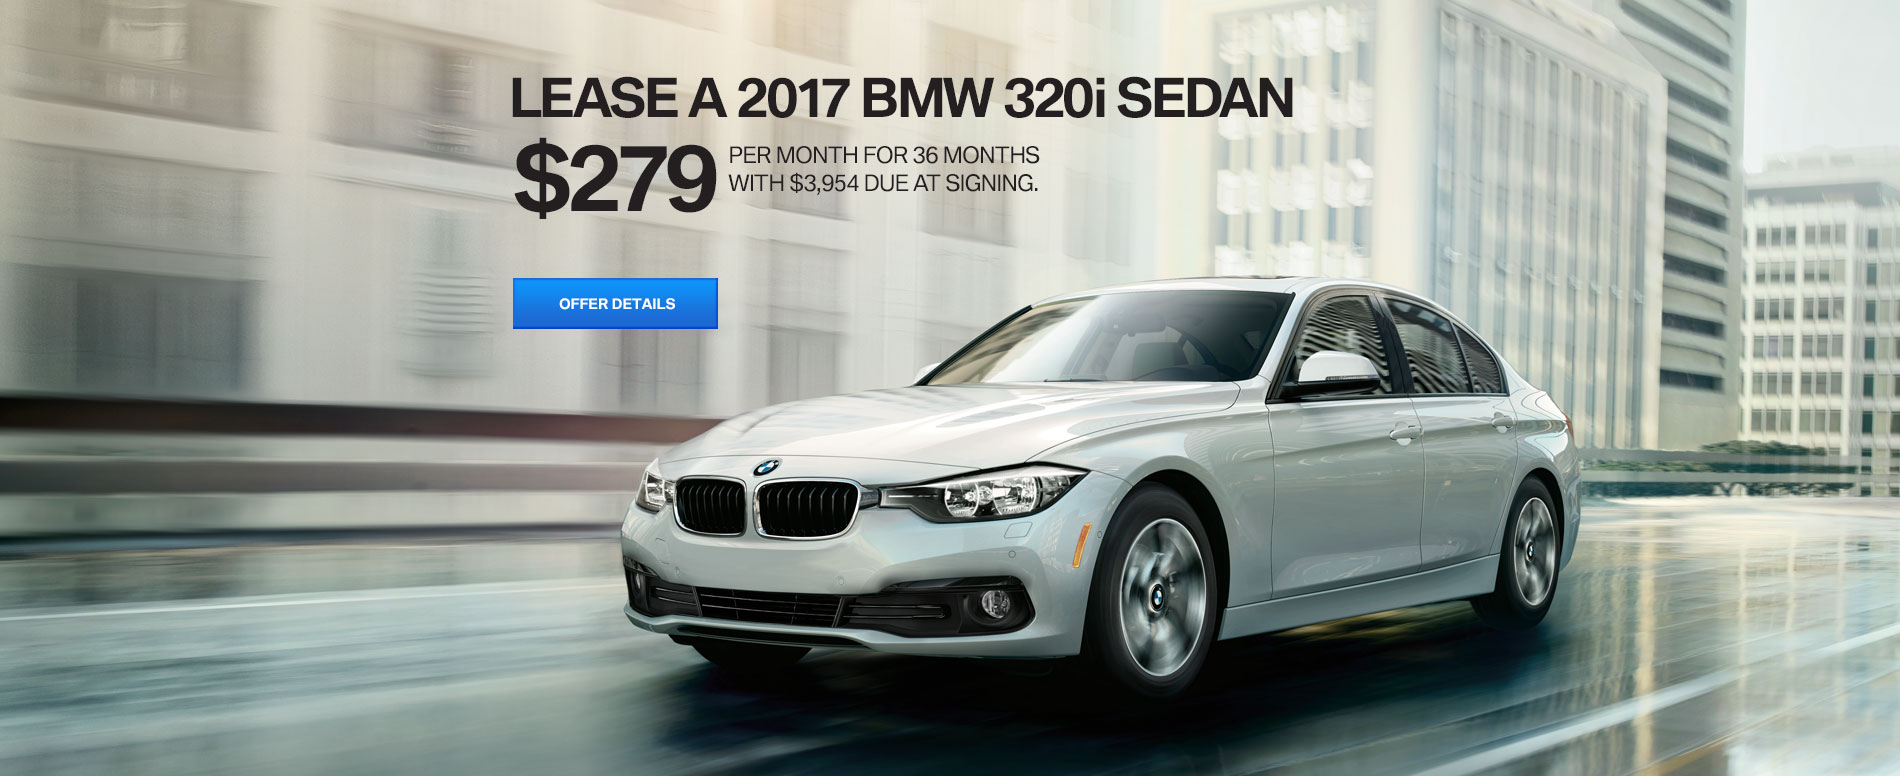 LEASE A 2017 BMW 320i SEDAN FOR $279/MO FOR 36 MONTHS, WITH $3,9